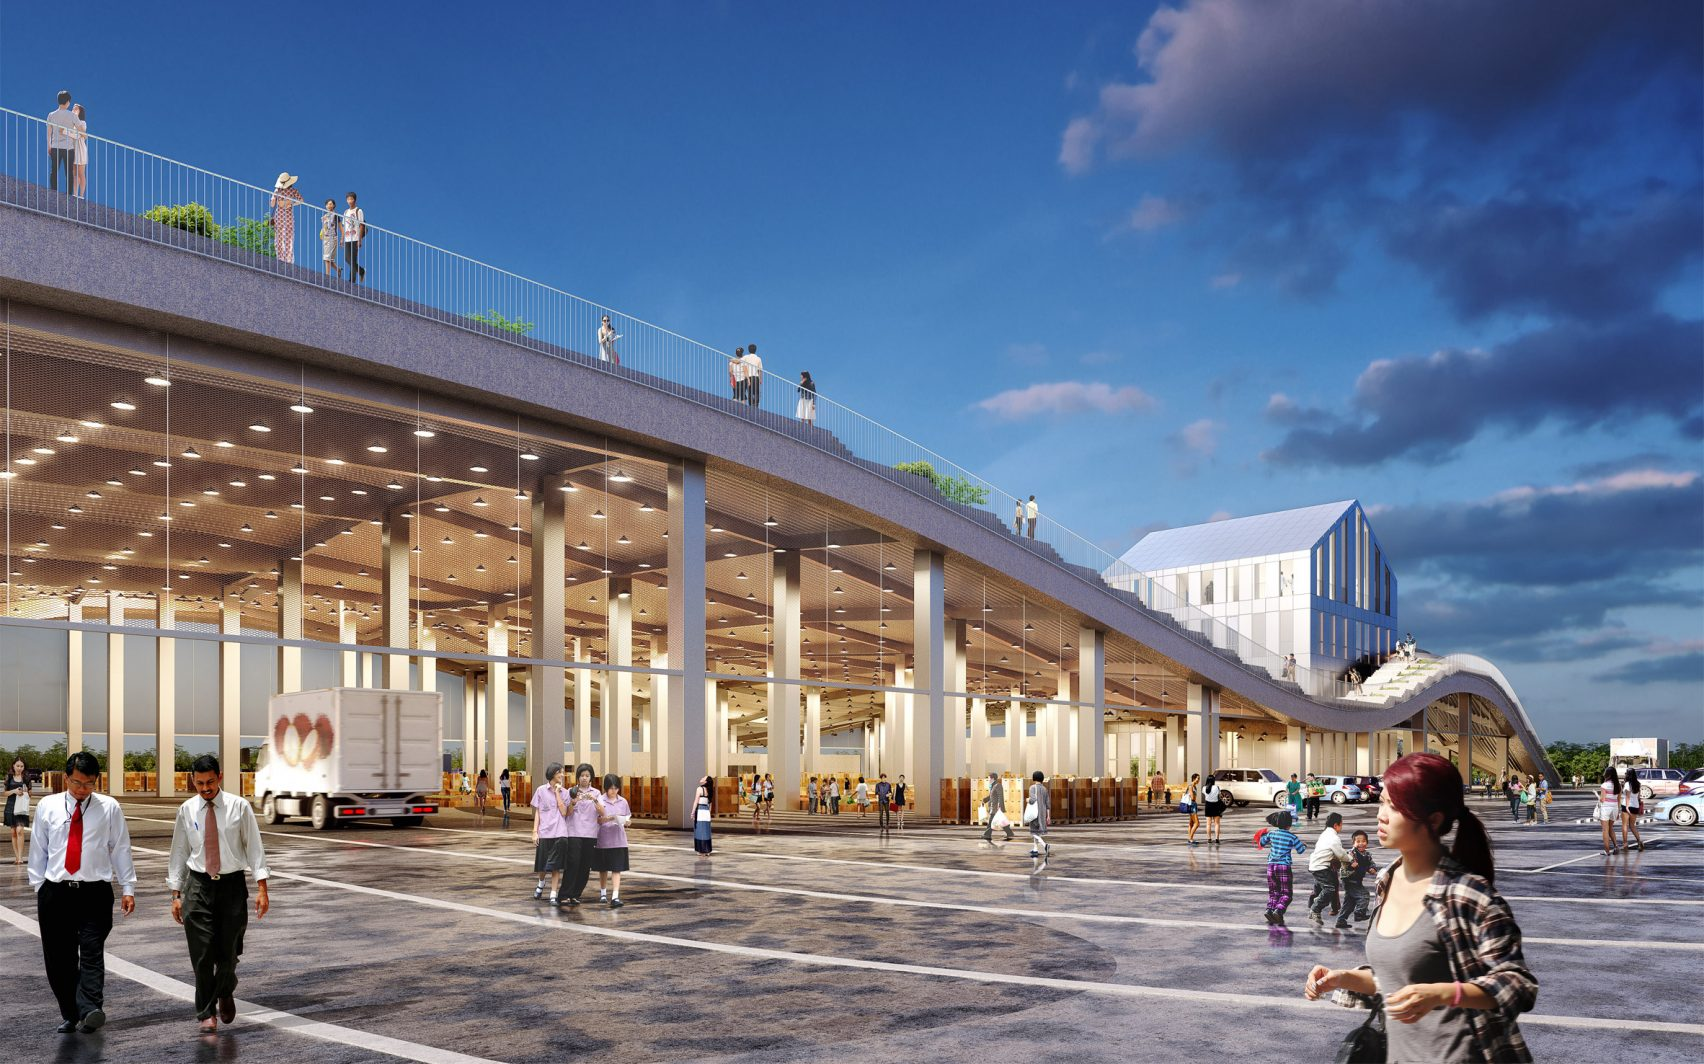 Tainan Xinhua Fruit and Vegetable Market by MVRDV will have rooftop farm